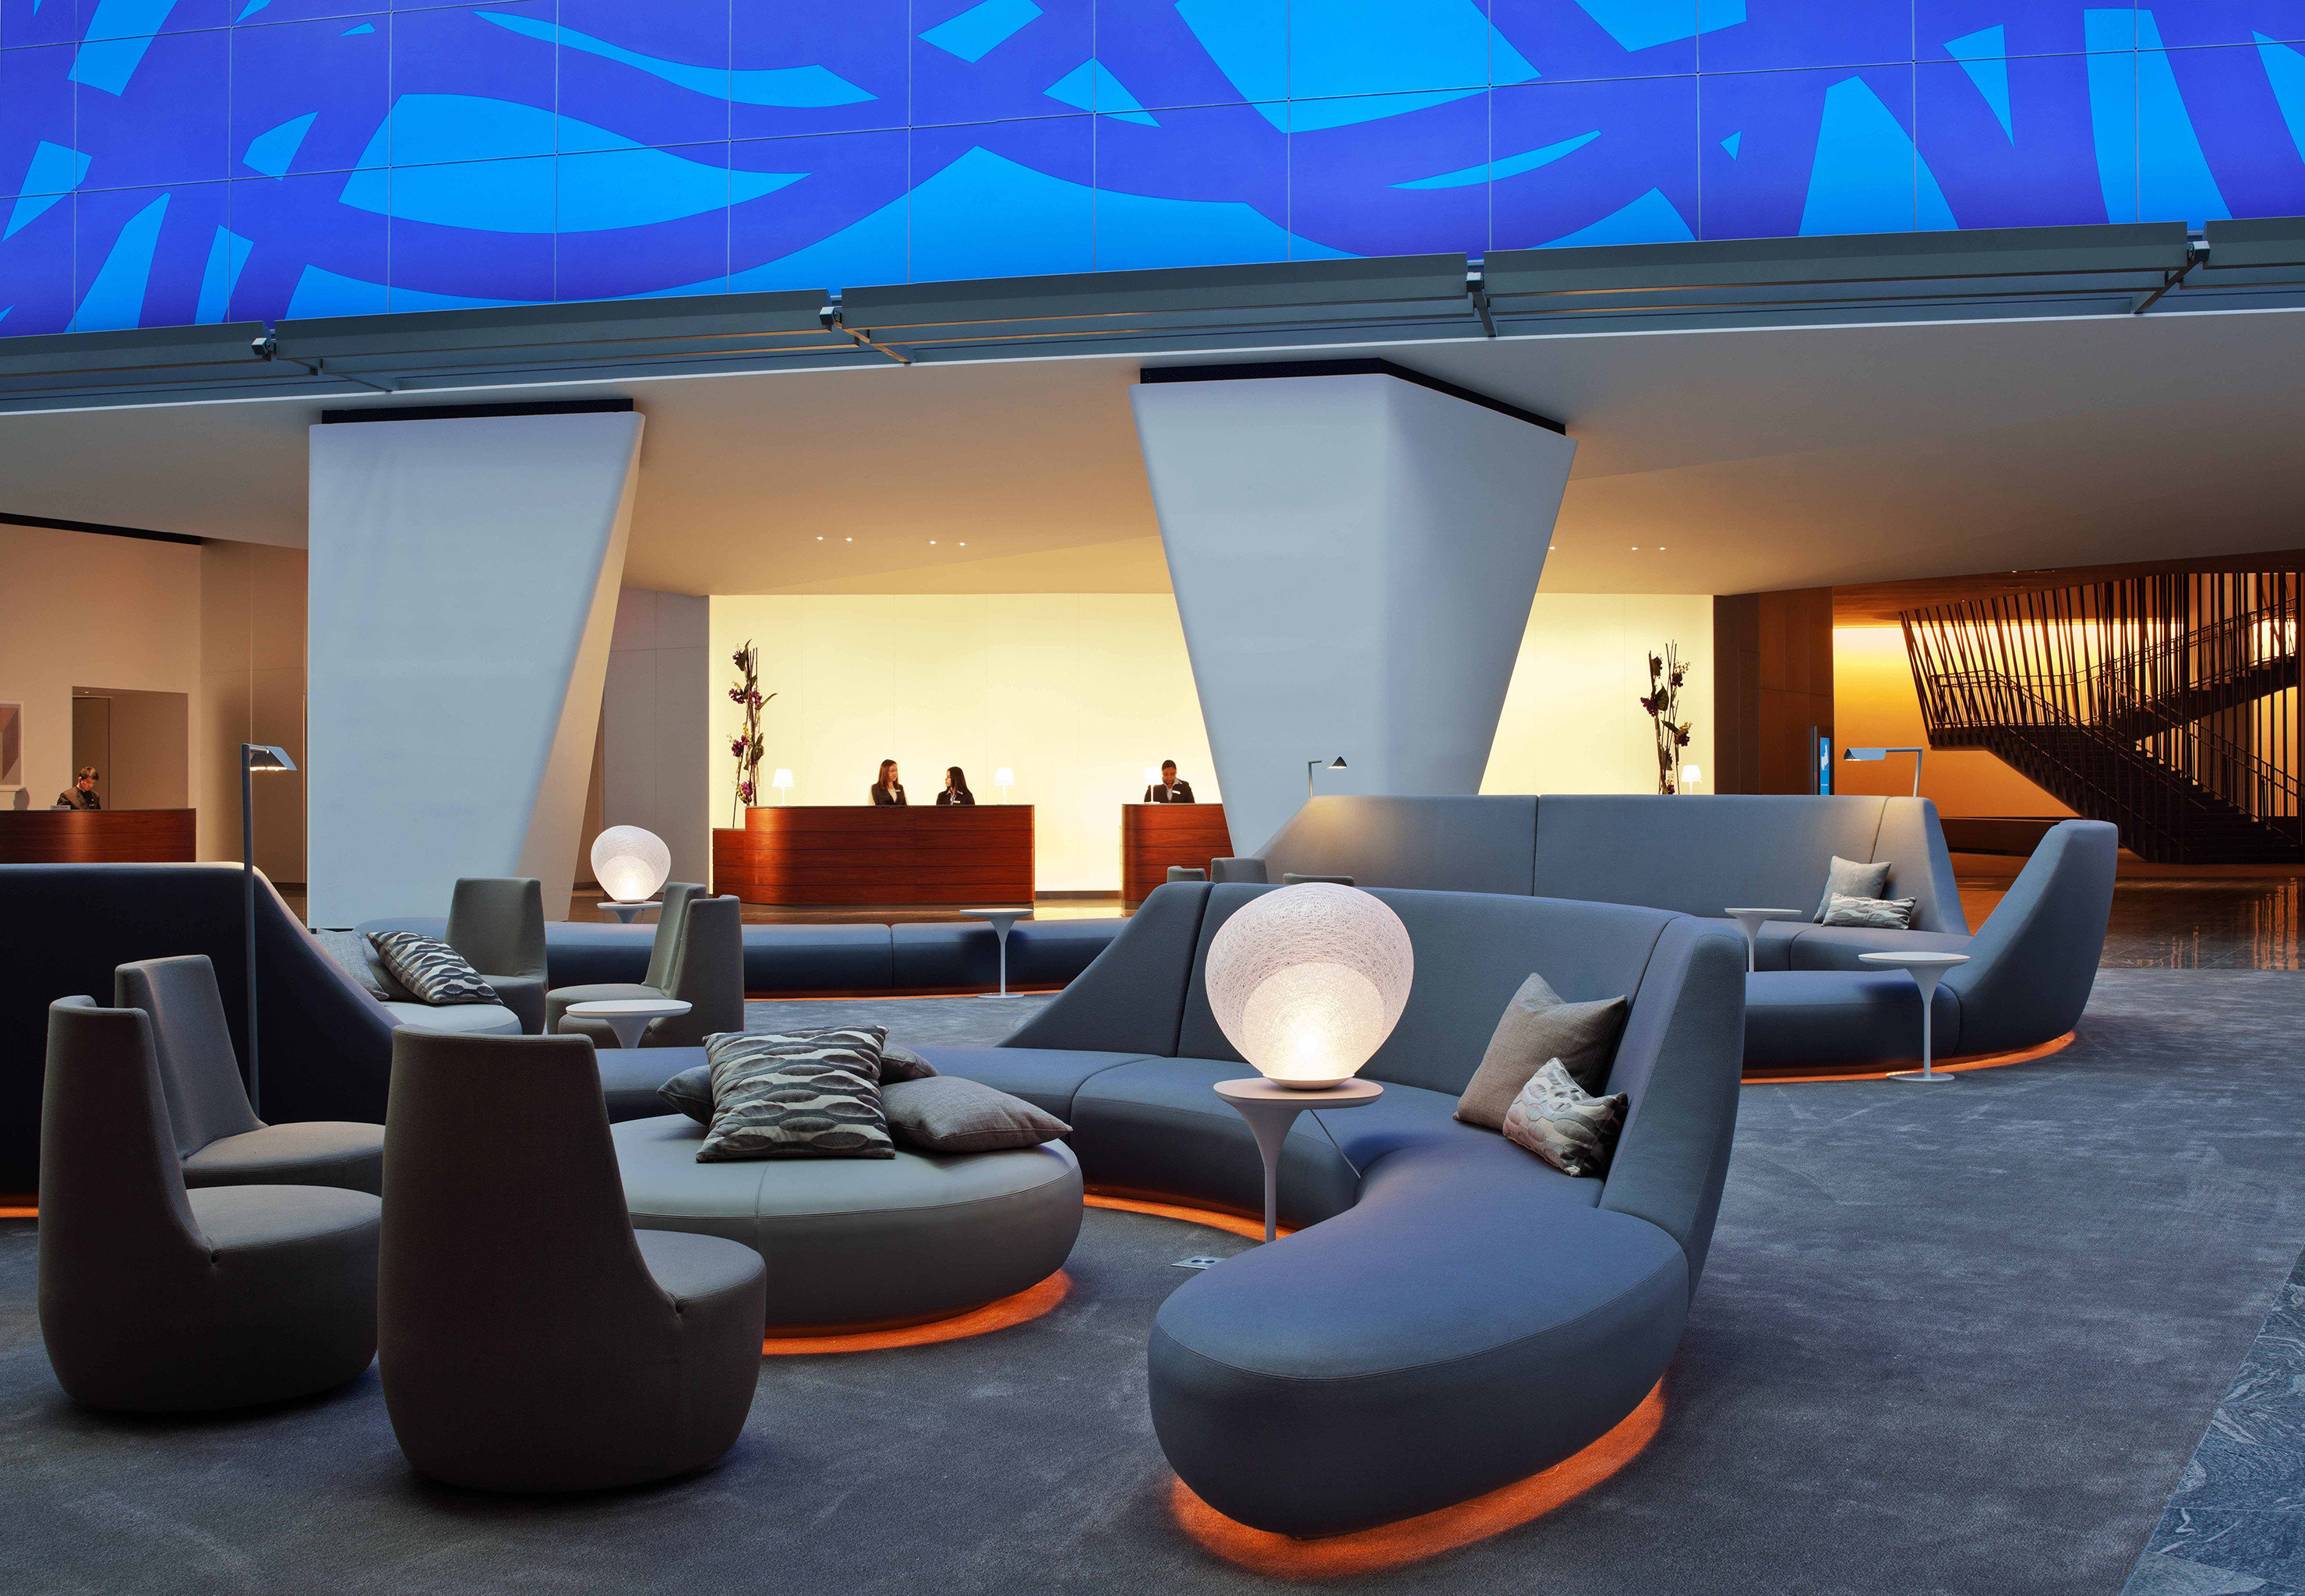 Lounge Luxury Modern Lobby living room conference hall convention center